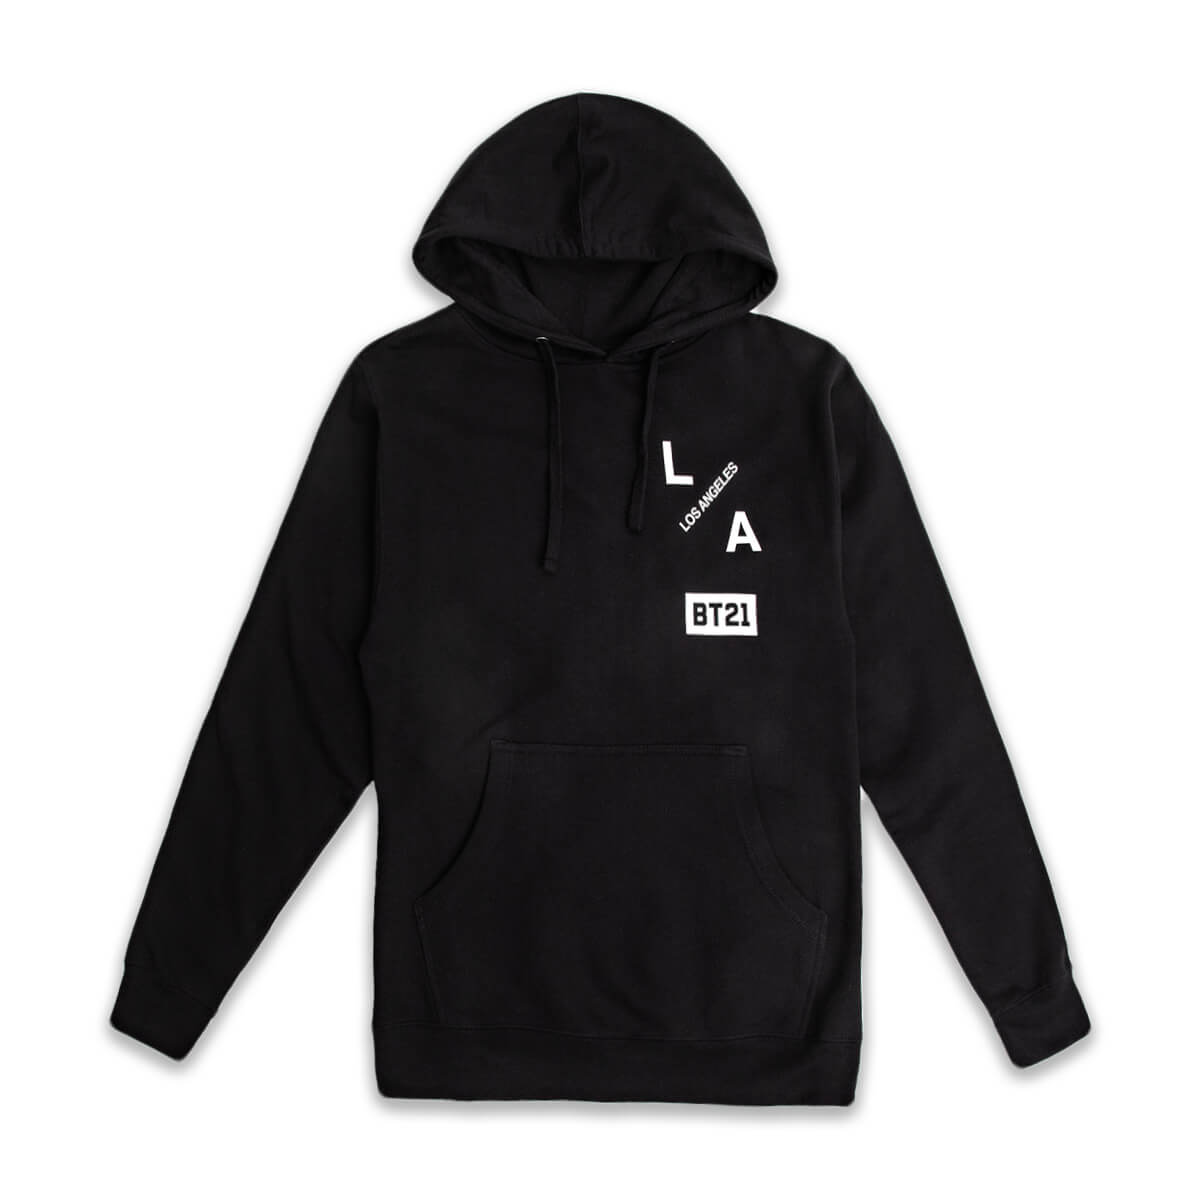 BT21 Group LA Hoodie Black